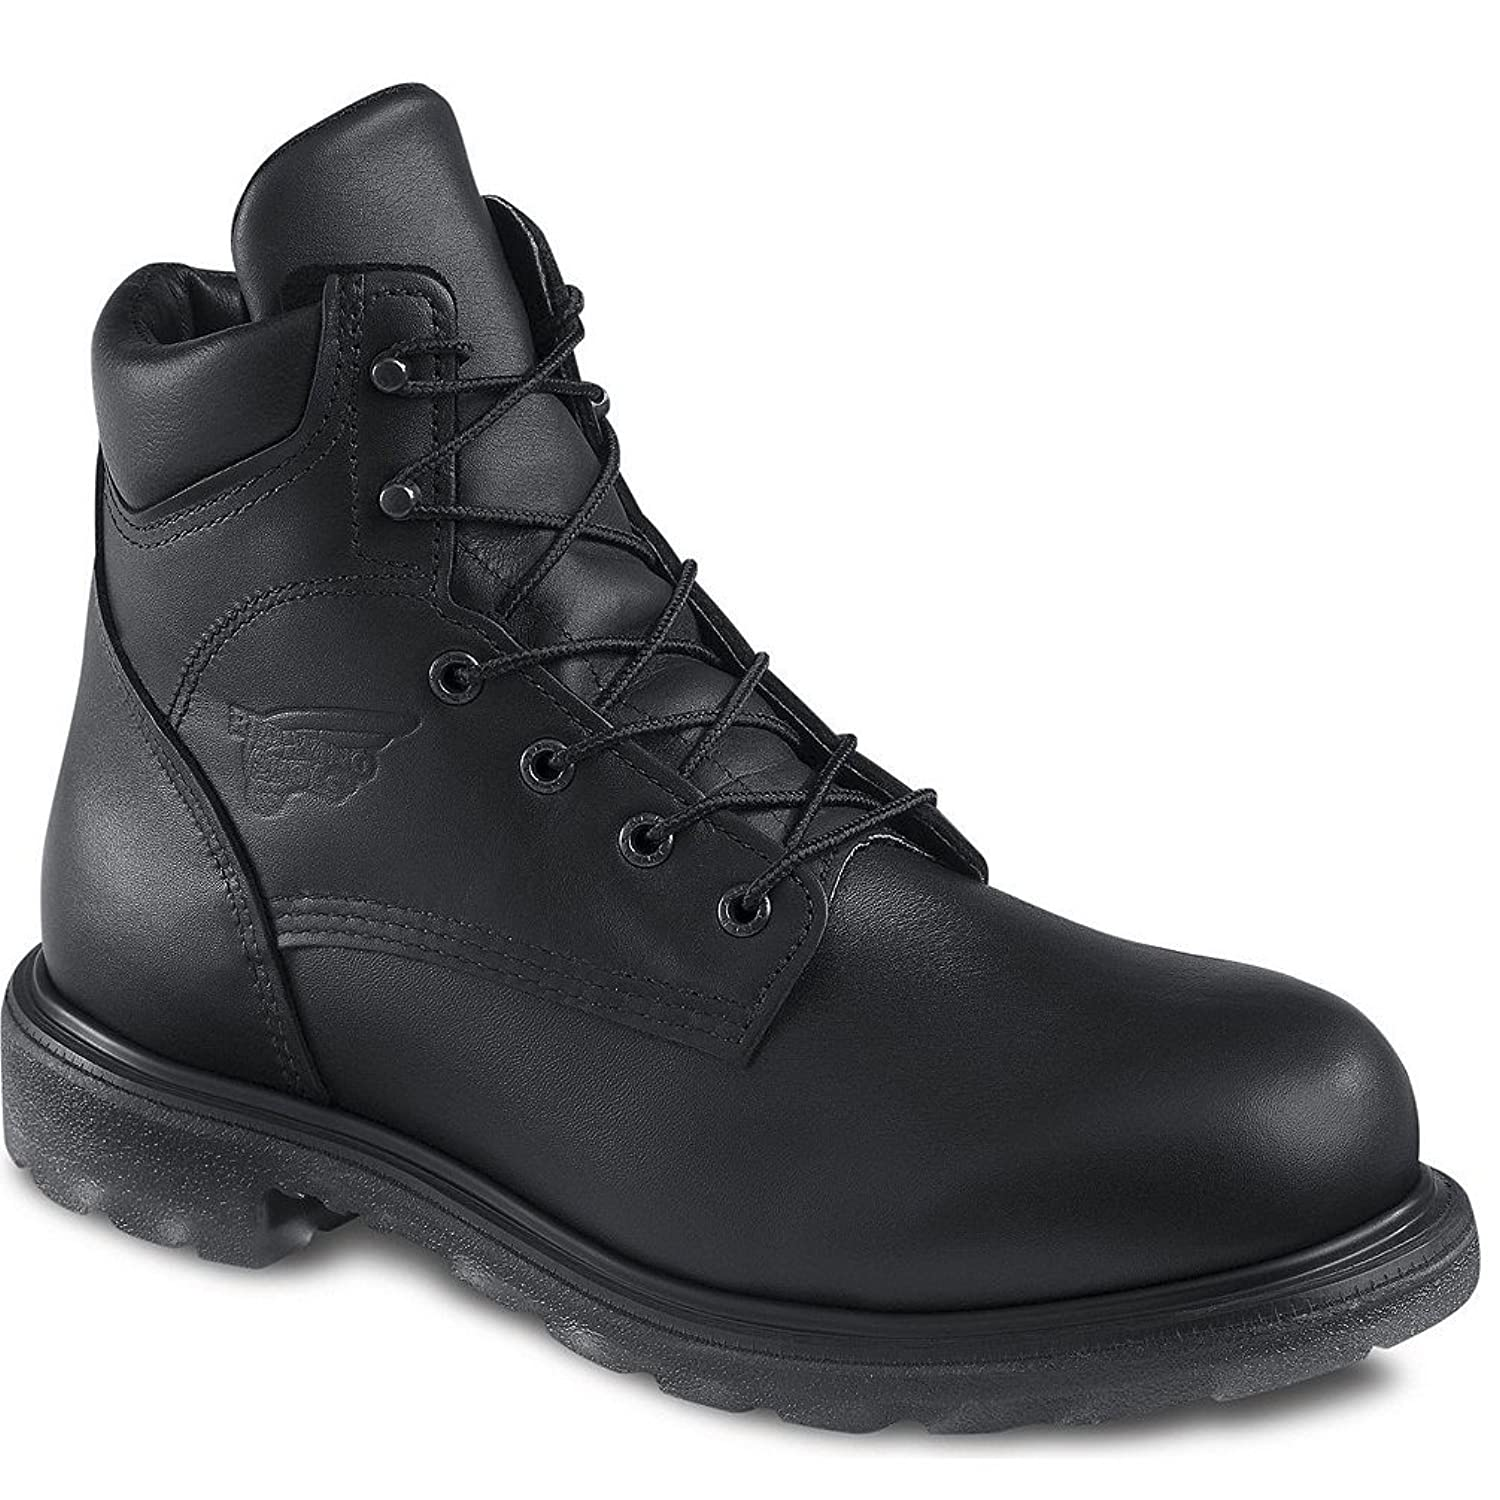 Red Wing 607 Men's 6-inch Boot Black